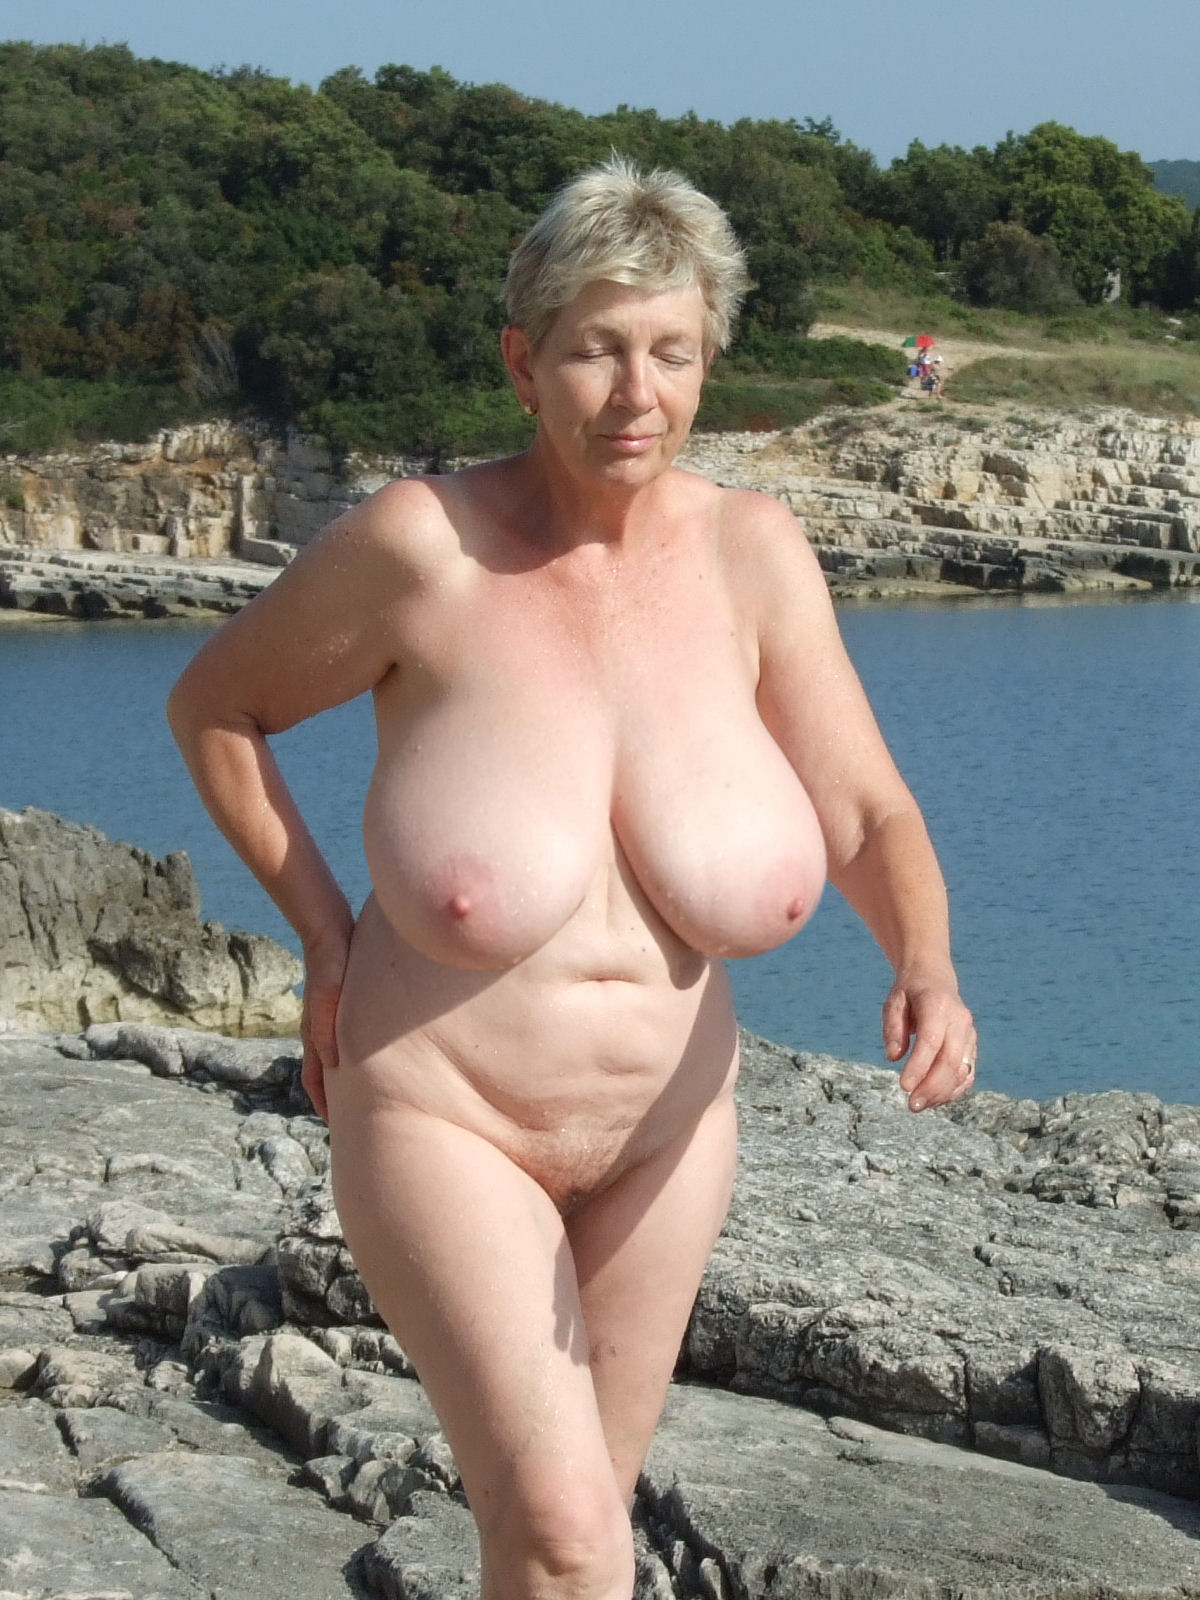 Big tits on mature women